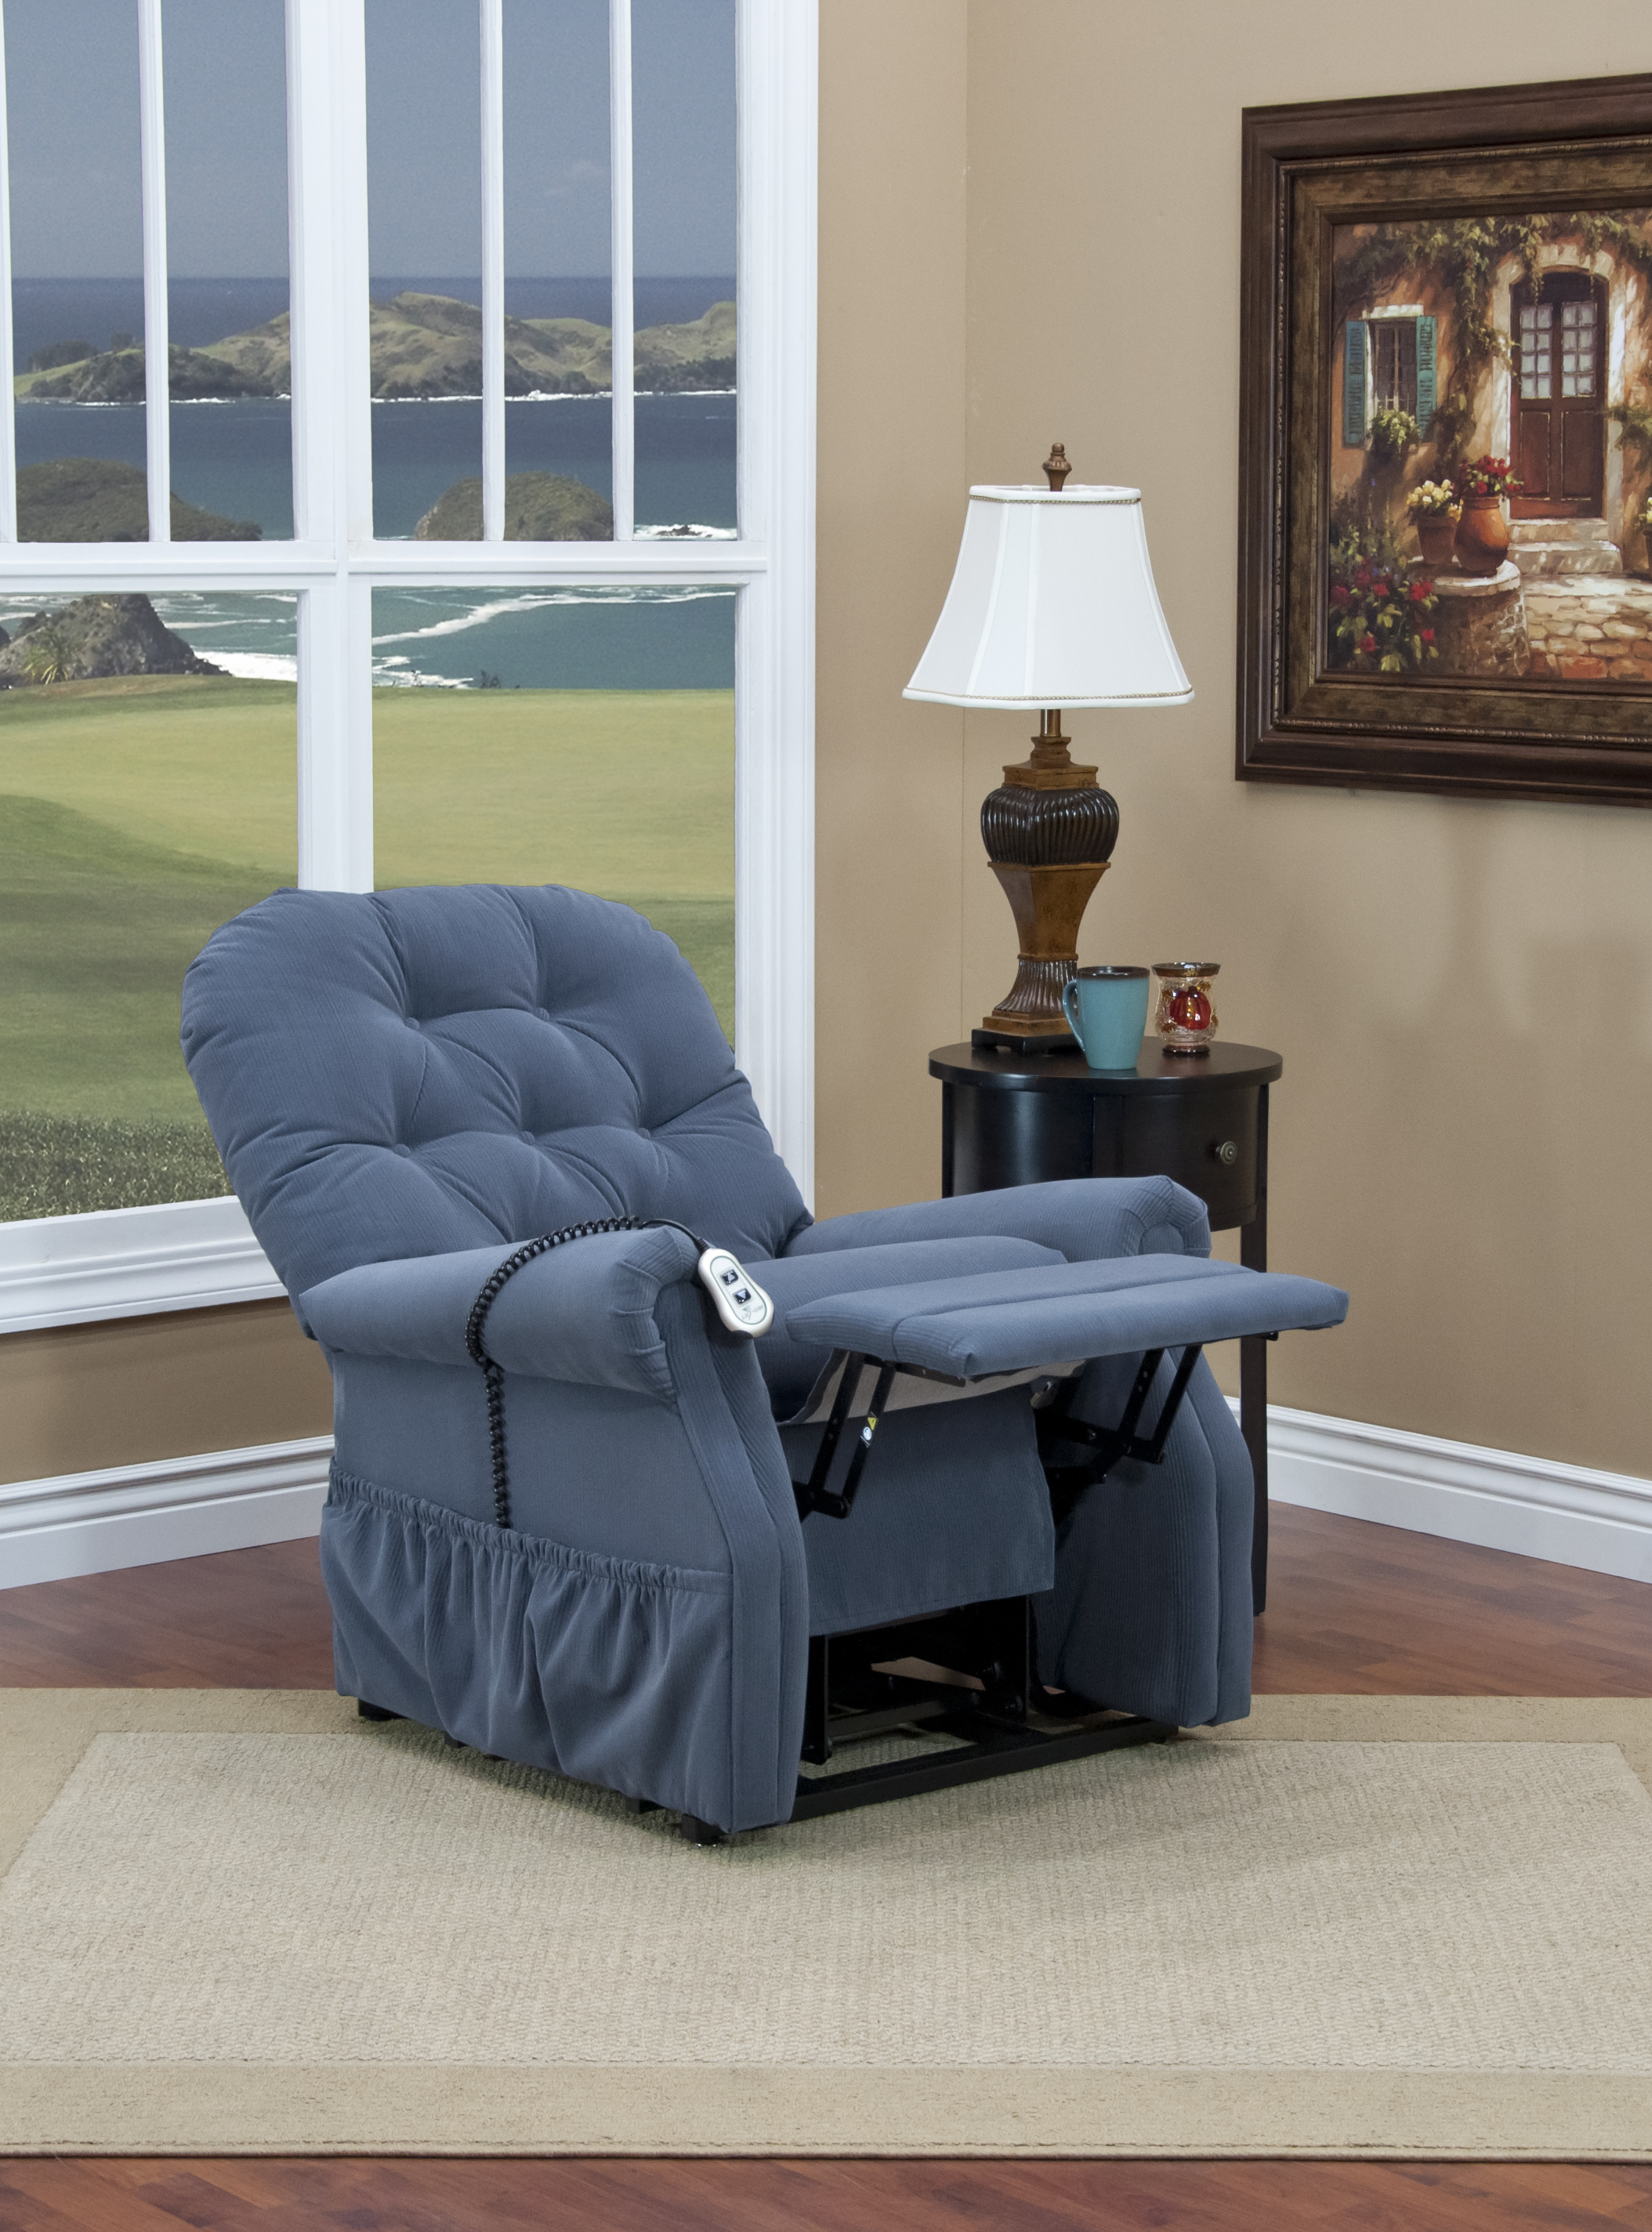 2553w-aaw-wide-aaron-williamsburg-blue-reclined.jpg